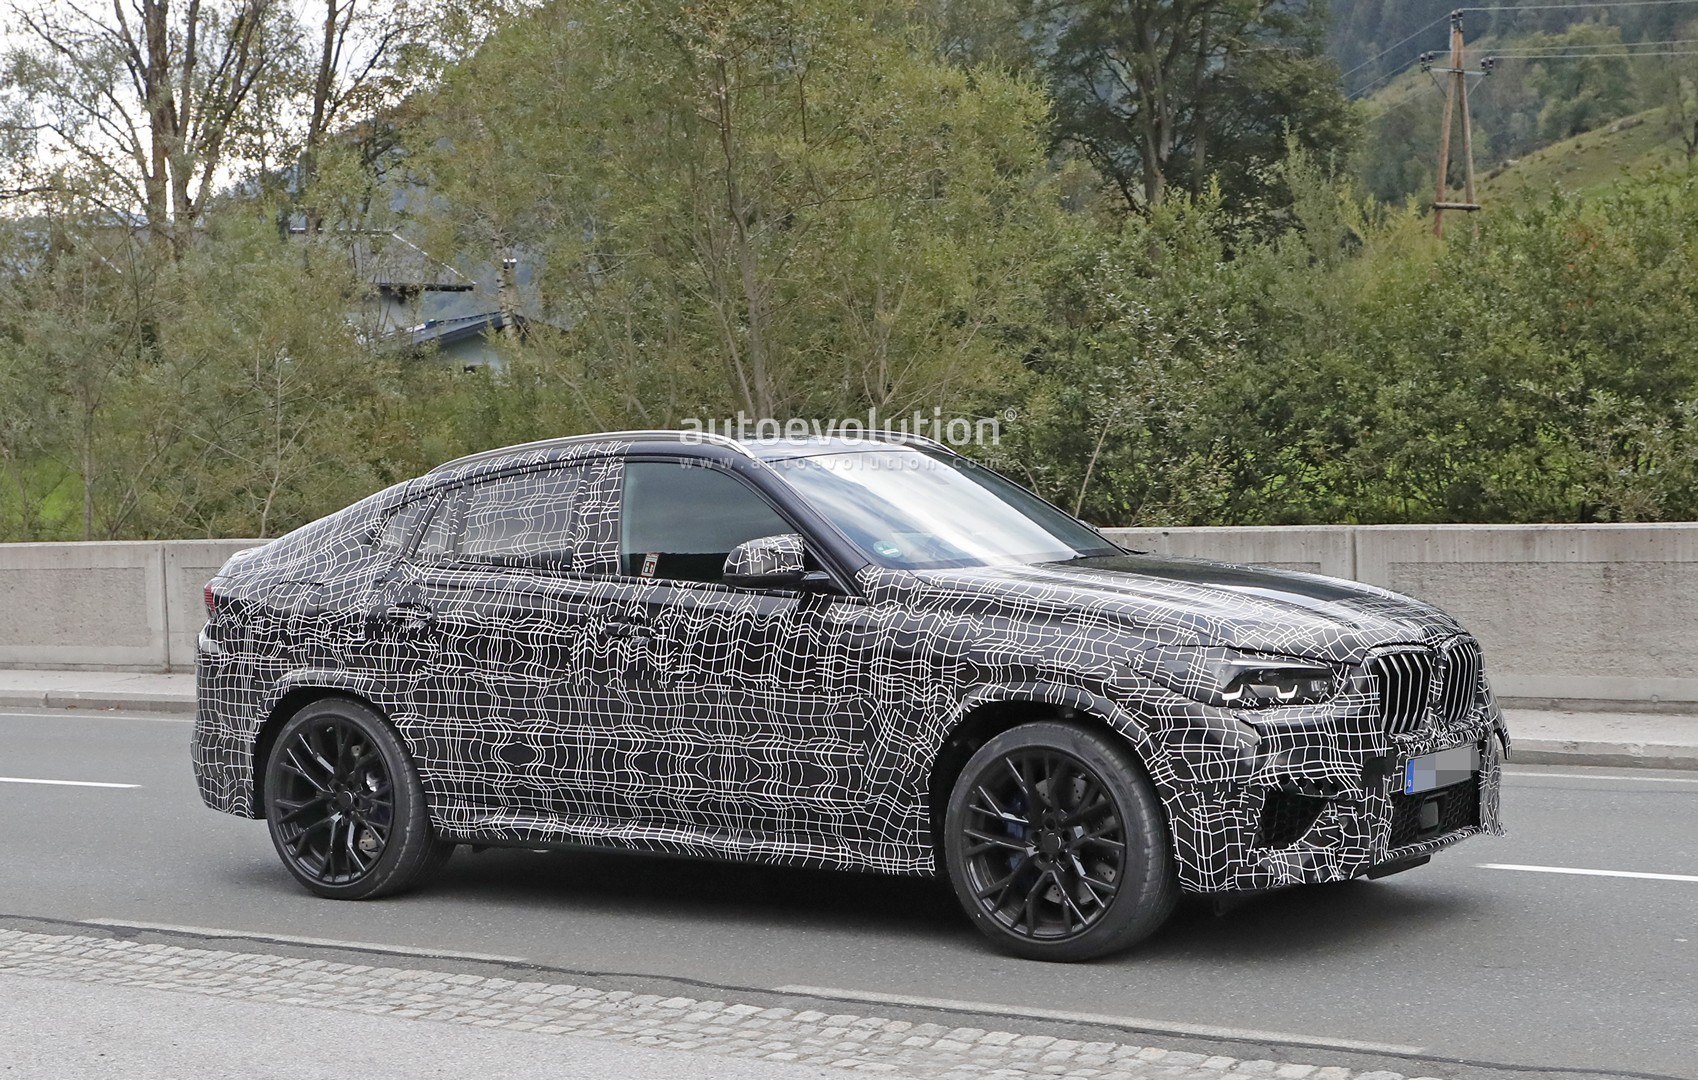 2020 BMW X6 M Spied Up Close and Personal - autoevolution